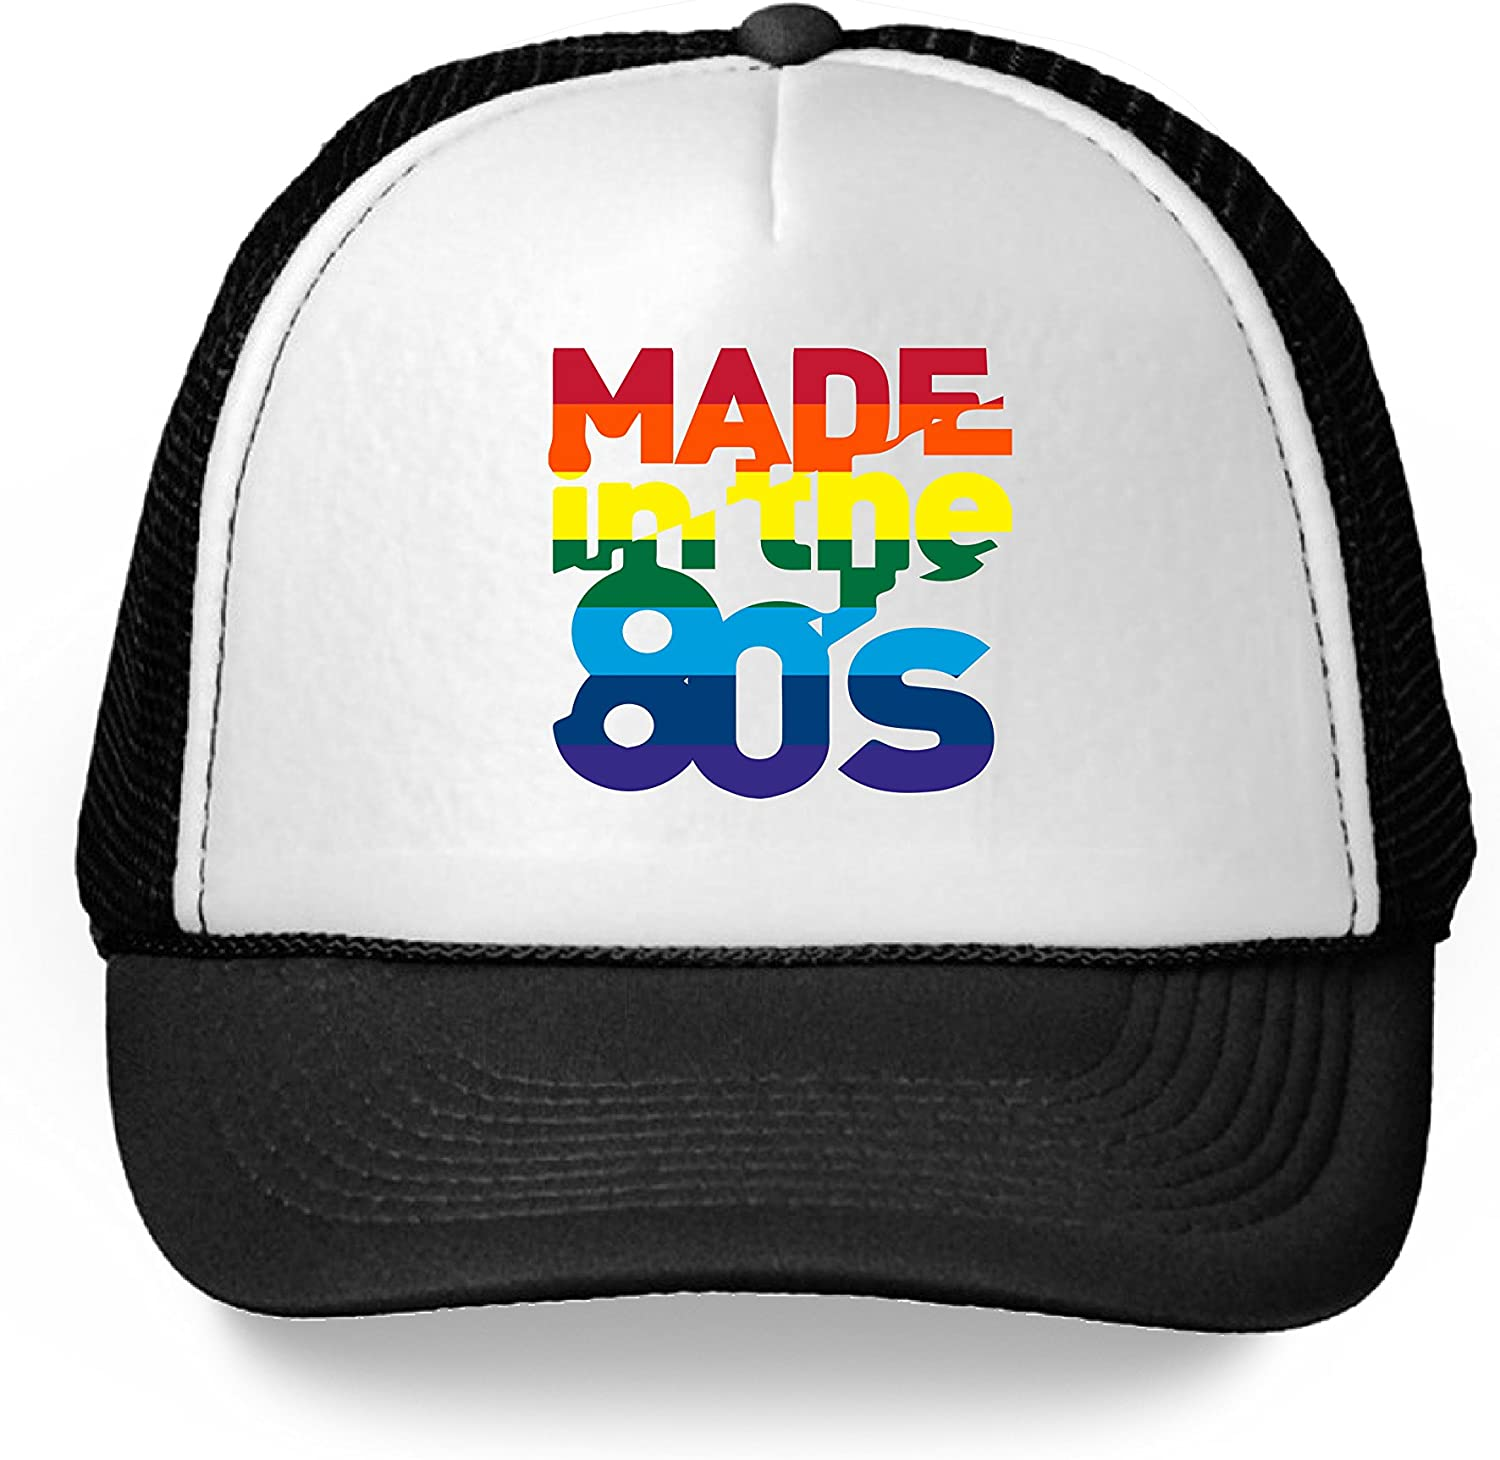 Awkward Styles 80s Accessories for 80s Party 80s Costume 80s Trucker Hat 80s Hat